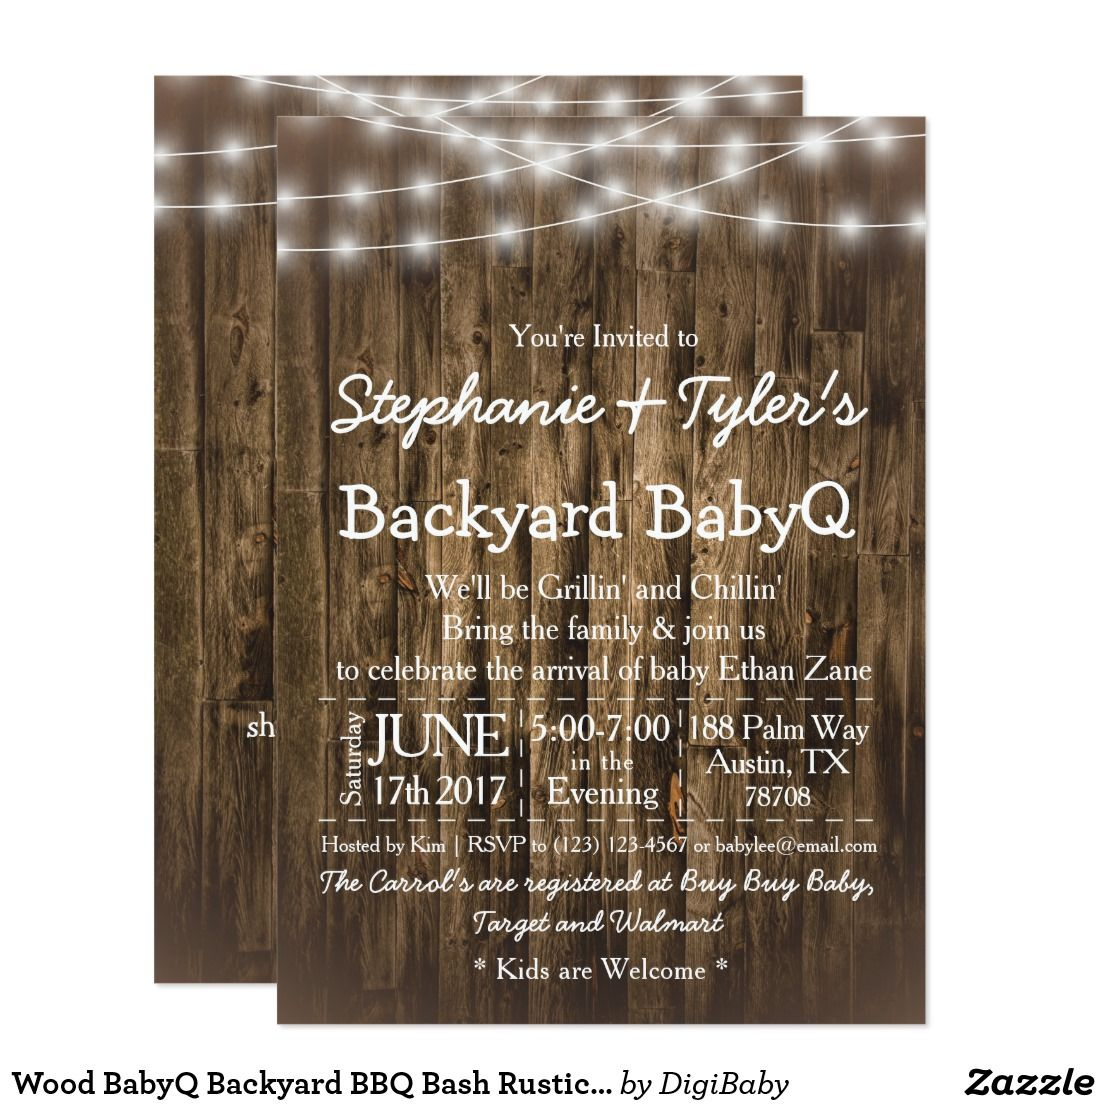 Wood Babyq Backyard Bbq Bash Rustic Baby Shower Invitation Template